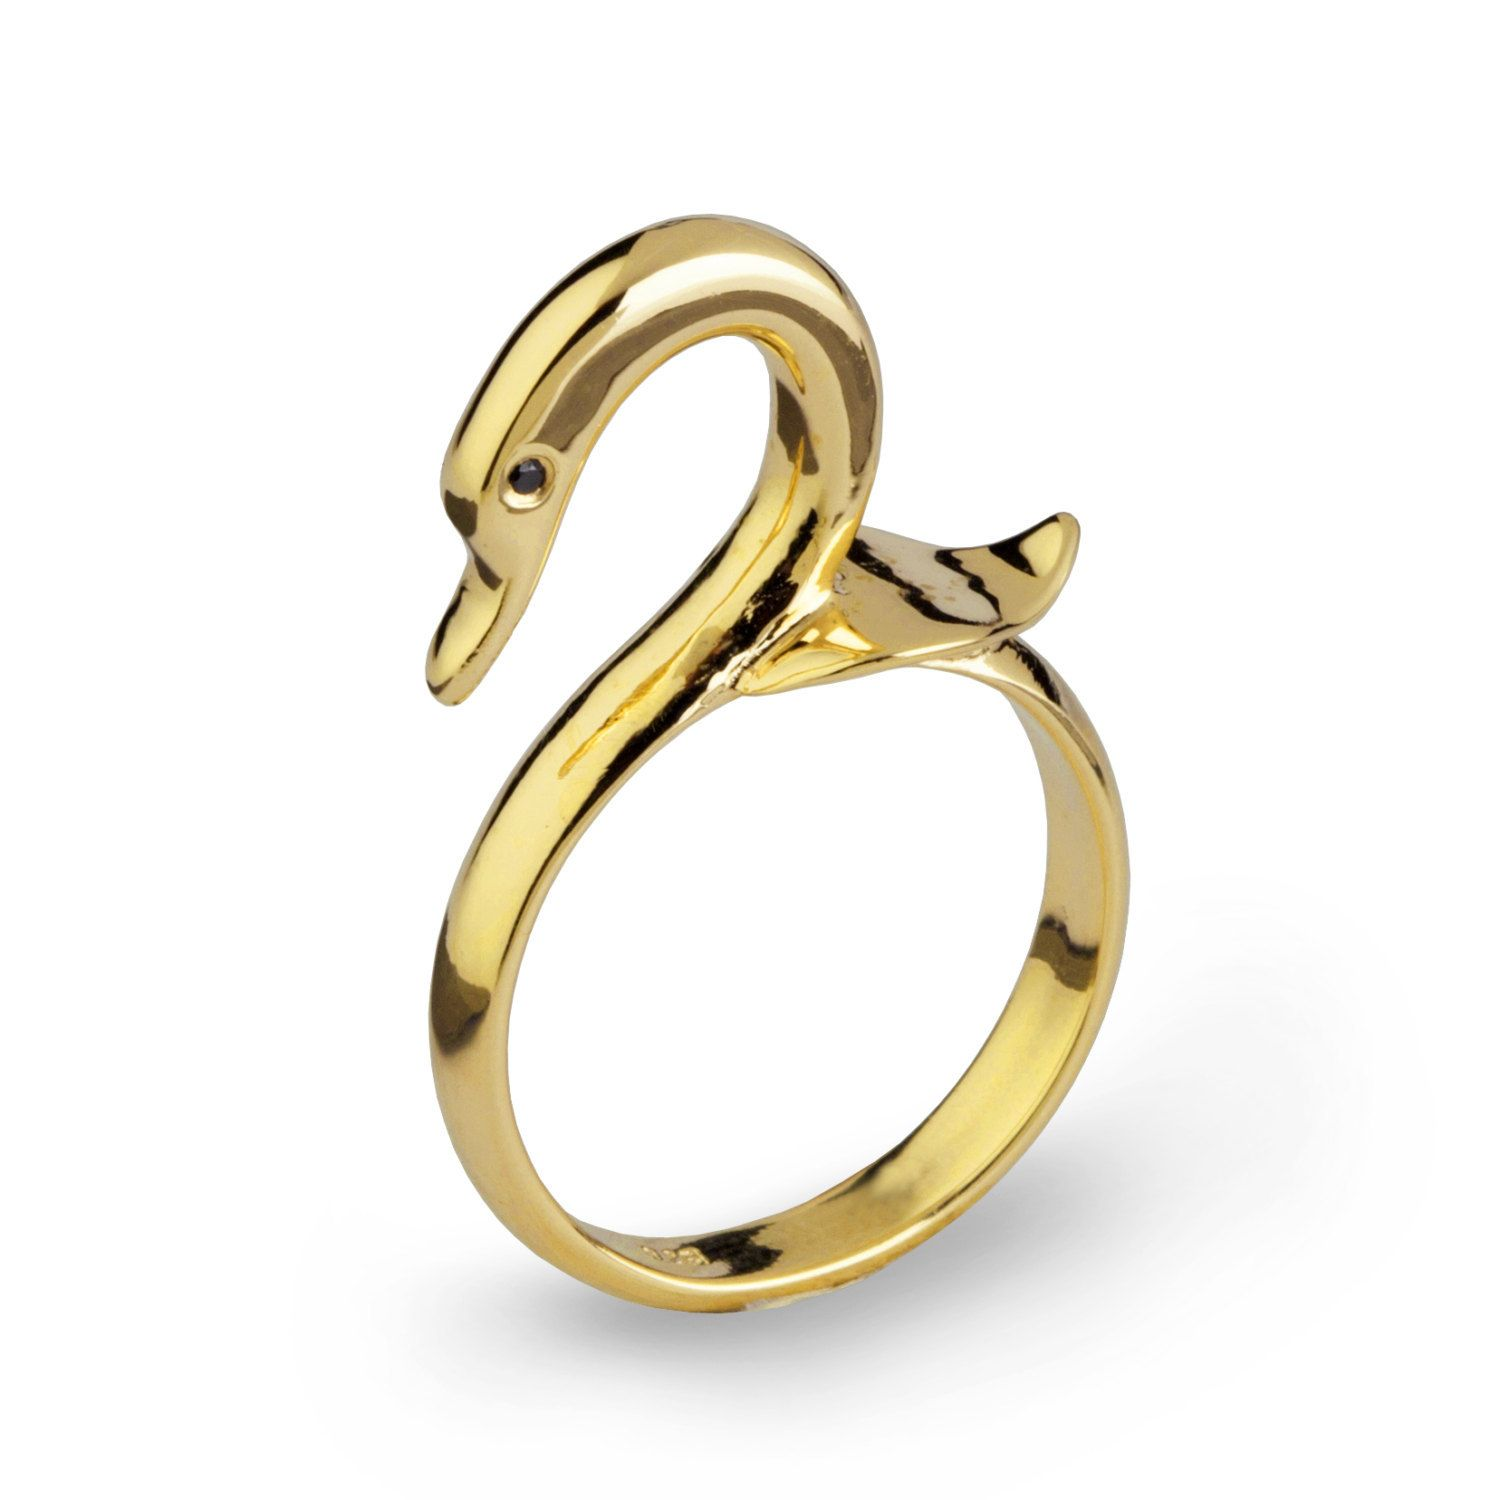 collective rings gold wedding engagement solitaire jewellers the stitch cairngorm ring alternative symbolic and